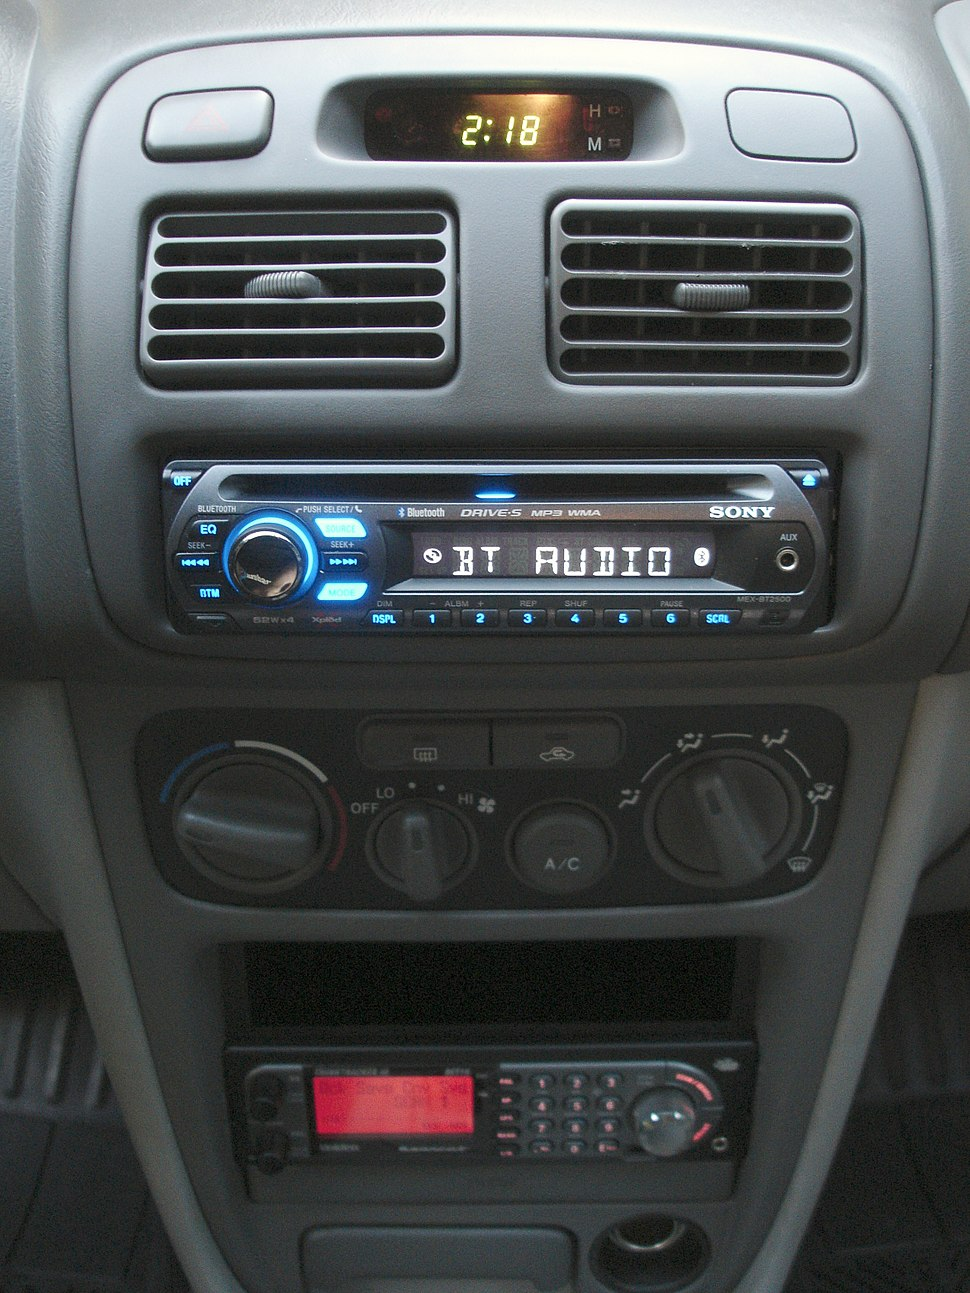 Car dashboard with MEX-BT2500 head unit and BCT-15 radio scanner installed and illuminated.jpeg